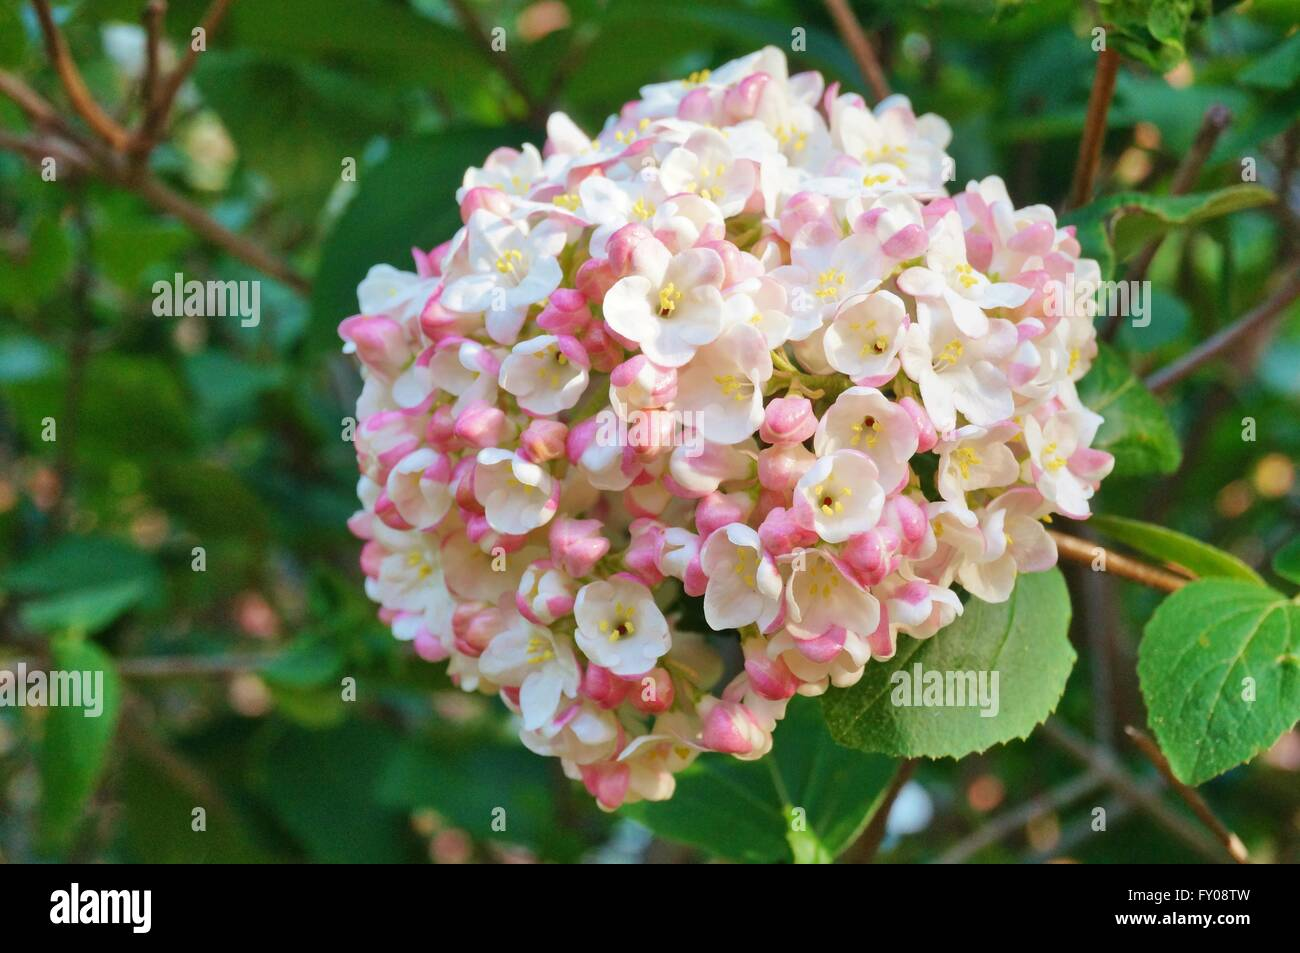 White and pink flower balls of fragrant viburnum in bloom stock white and pink flower balls of fragrant viburnum in bloom mightylinksfo